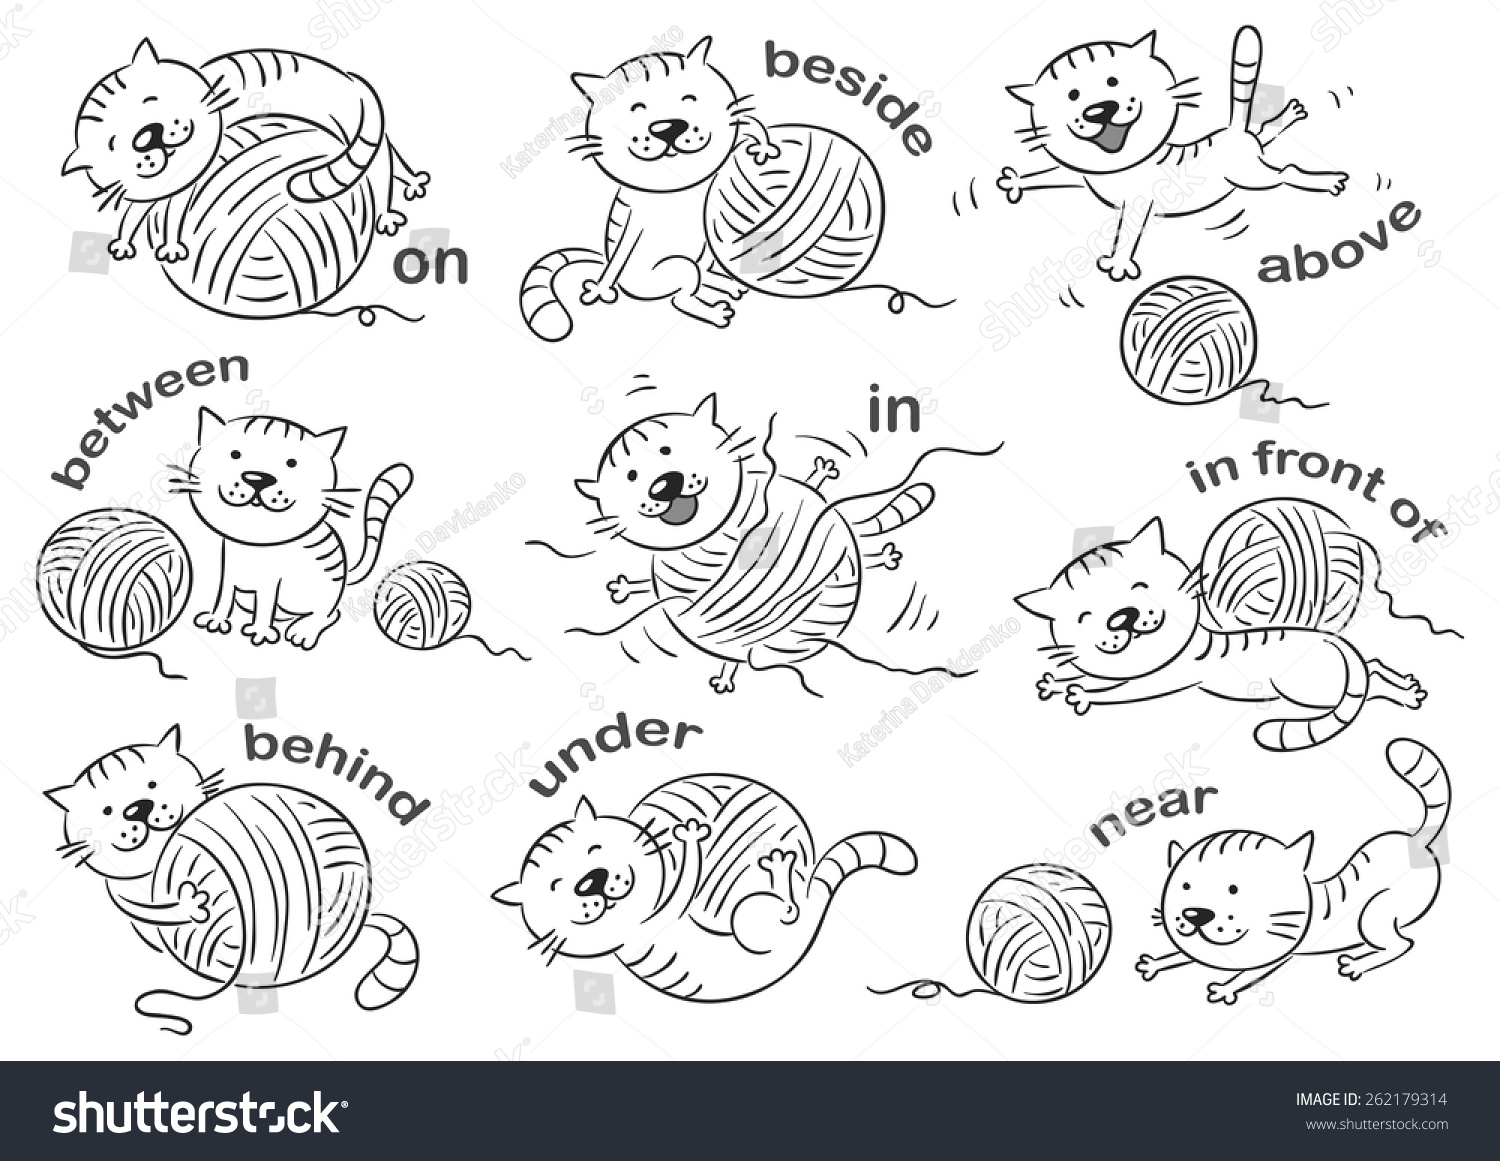 Cartoon Cat Different Poses Illustrate Prepositions Stock